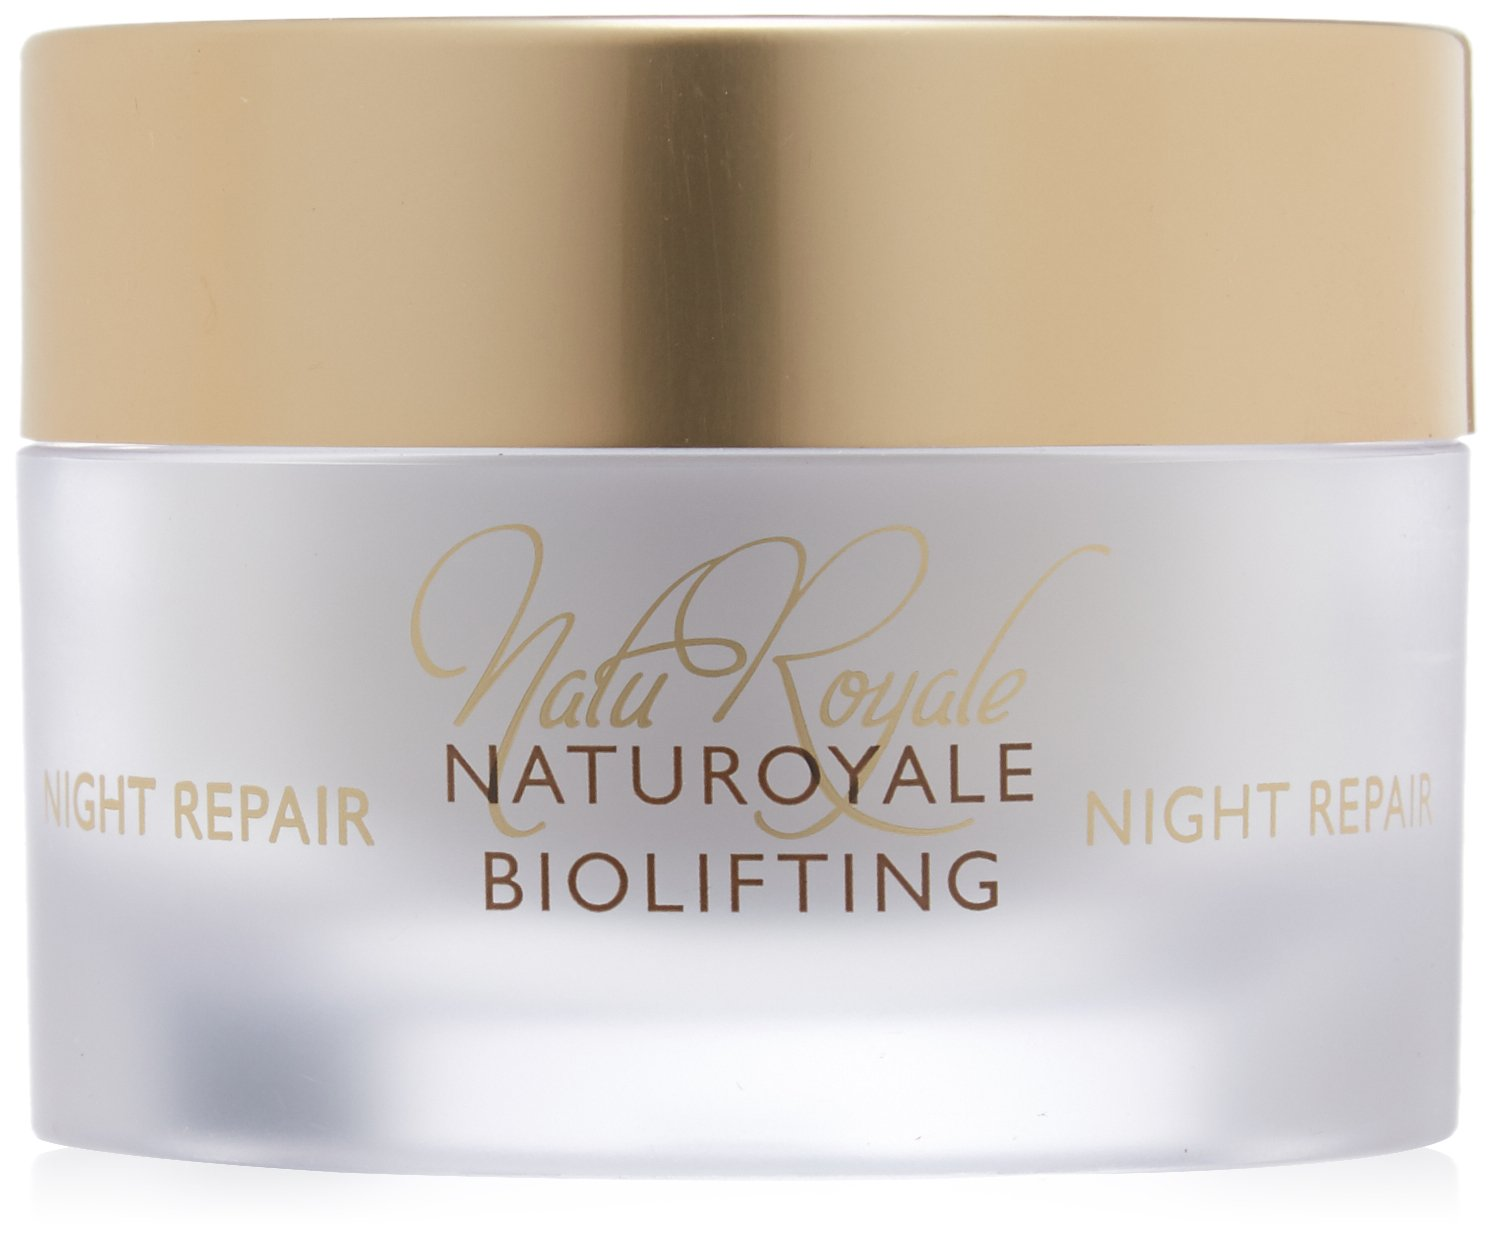 ANNEMARIE BÖRLIND – NATUROYALE Night Cream – Natural Anti Aging Face Cream - Retinol Vitamin C + E for a Fresher Smoother and Tighter Skin with a New Youthful Glow – Step 4 of 5 – 1.69 oz.